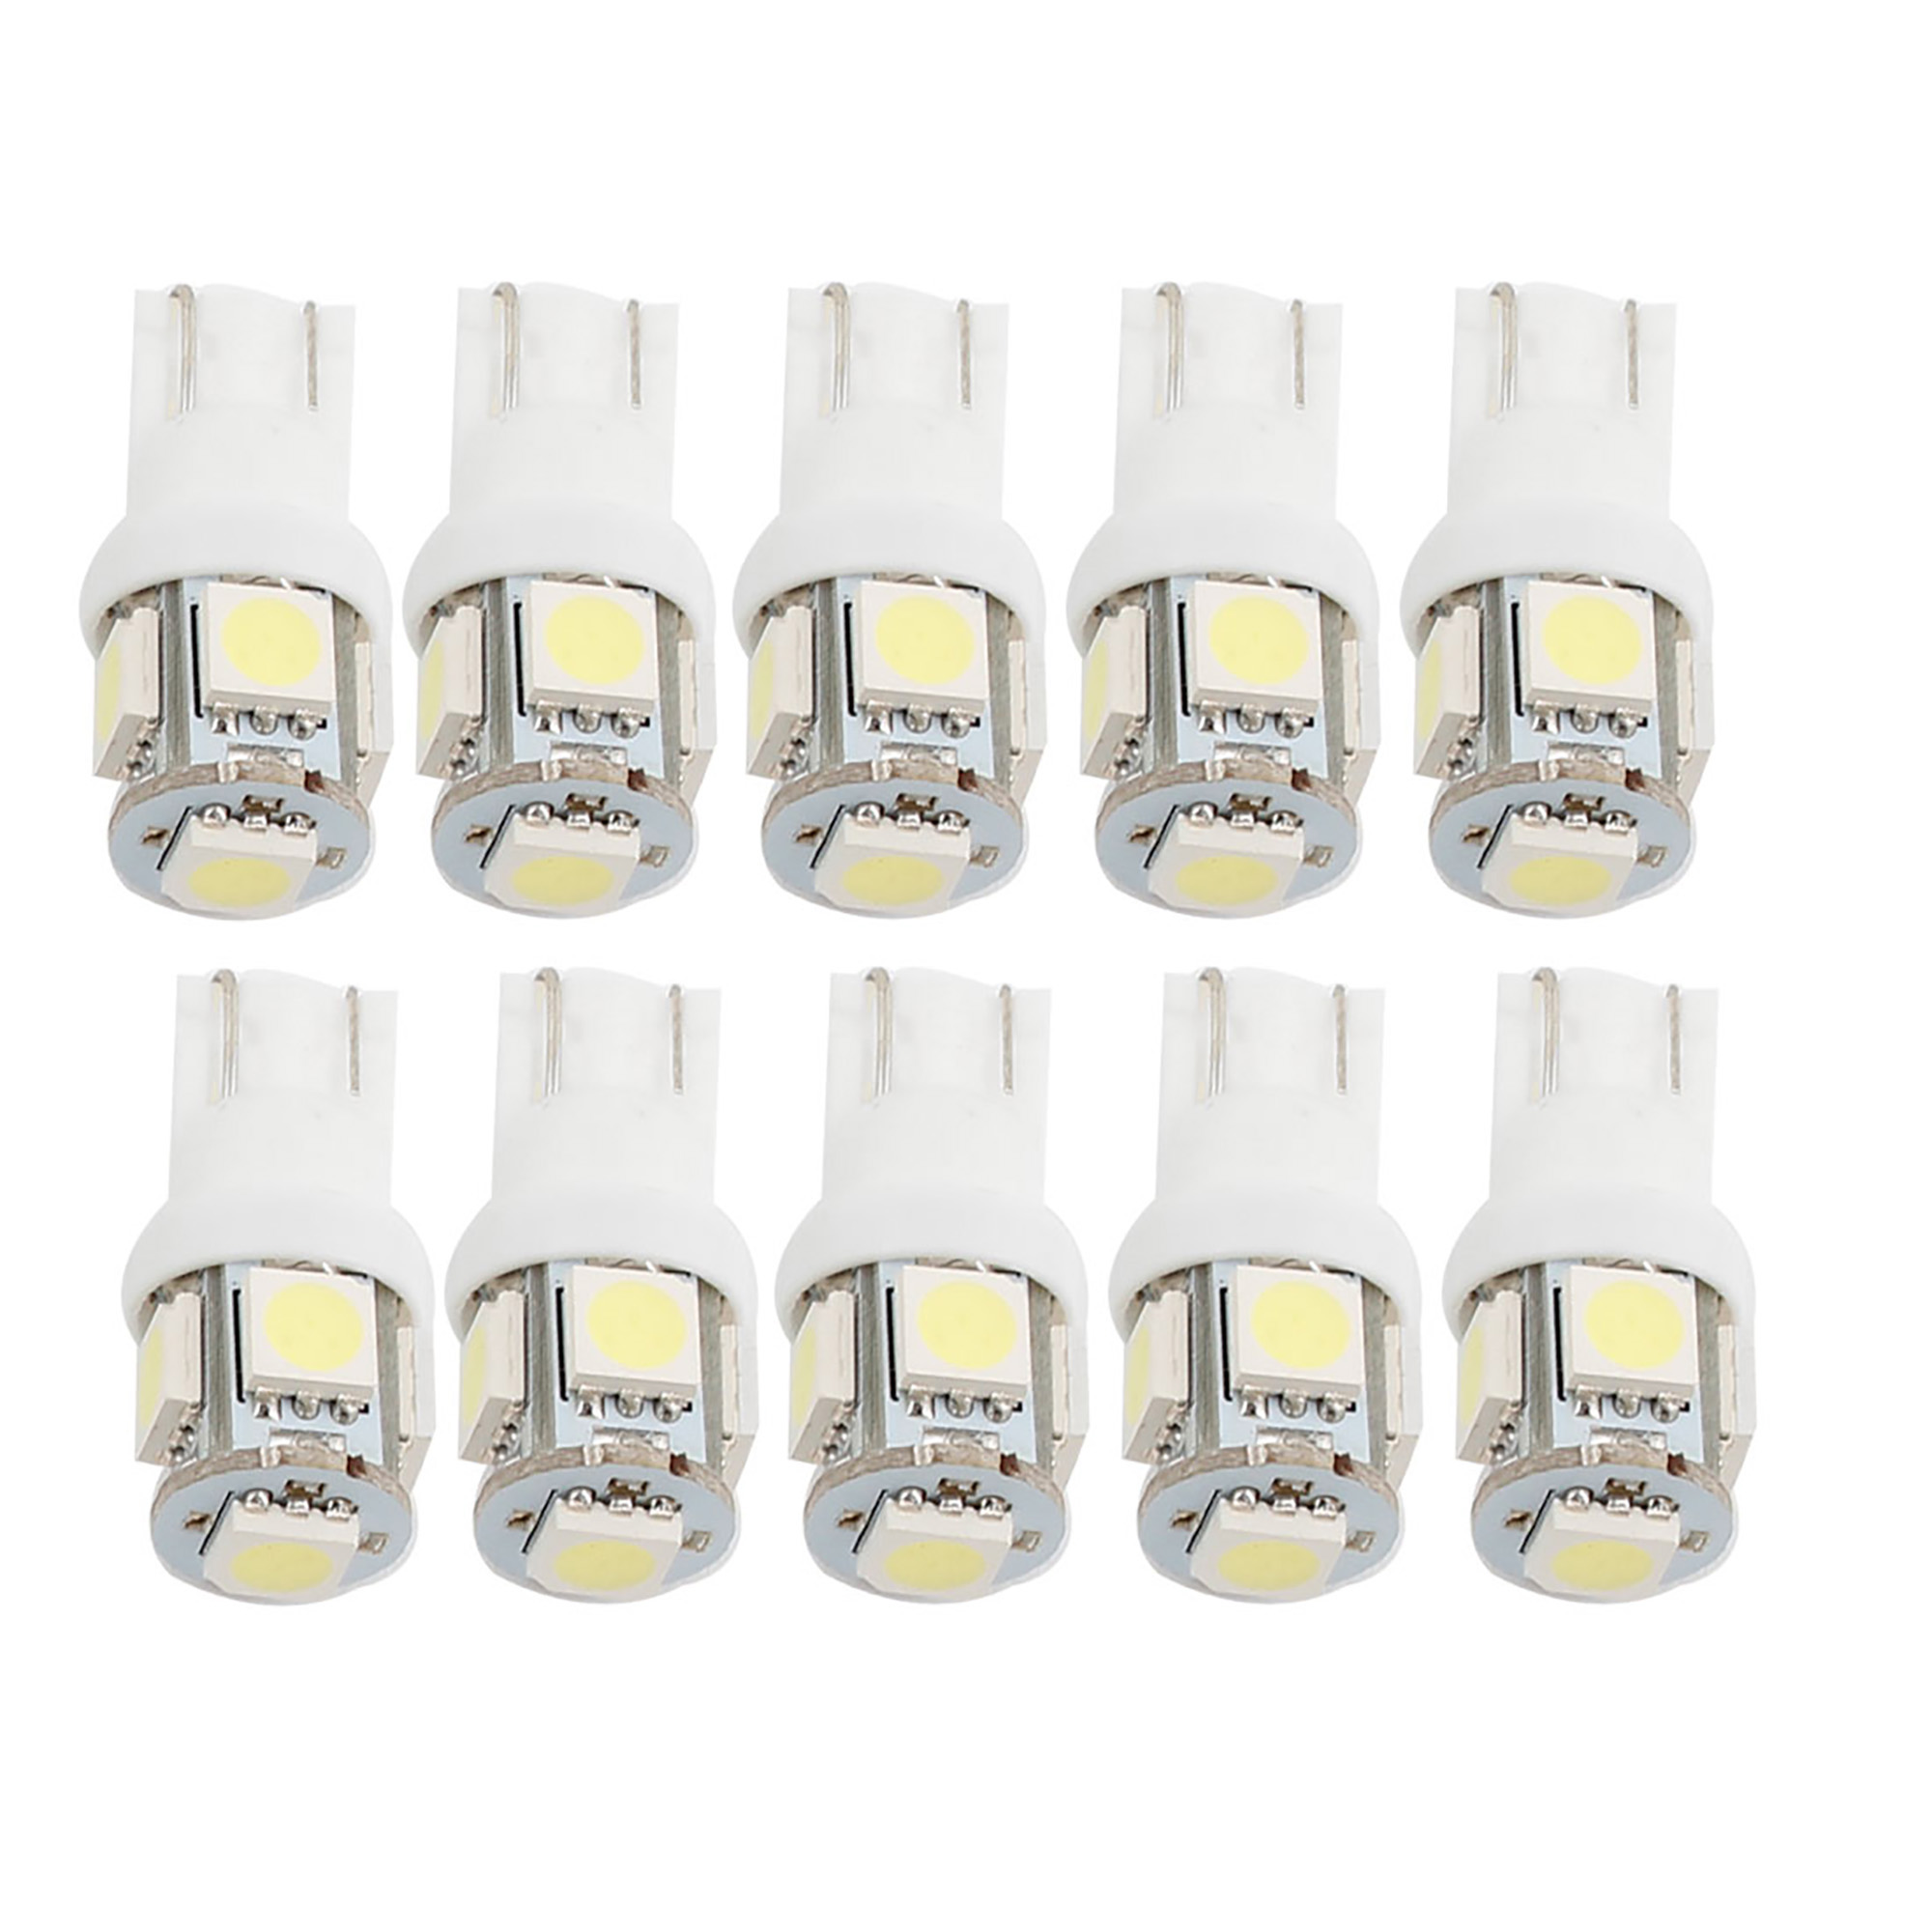 10 Pcs White 5050 SMD 5 LED T10 W5W 194 168 192 Car Signal Side Light Bulbs